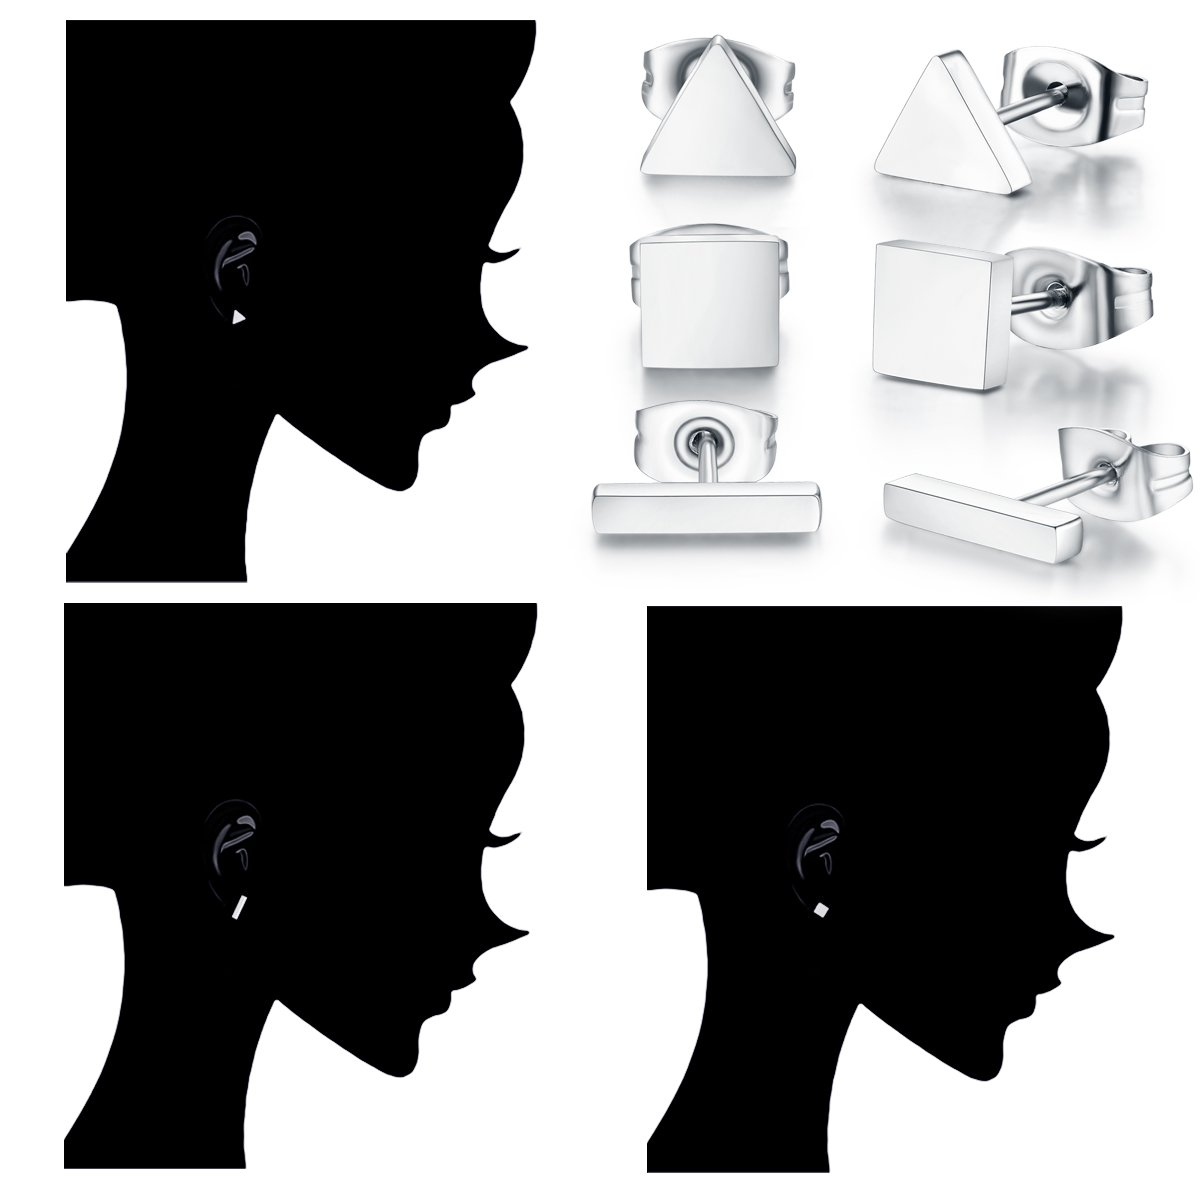 SPINEX 3 Pairs Silver Stud Earring Set Pierced (Rectangle, Square, Triangle) by SPINEX (Image #6)